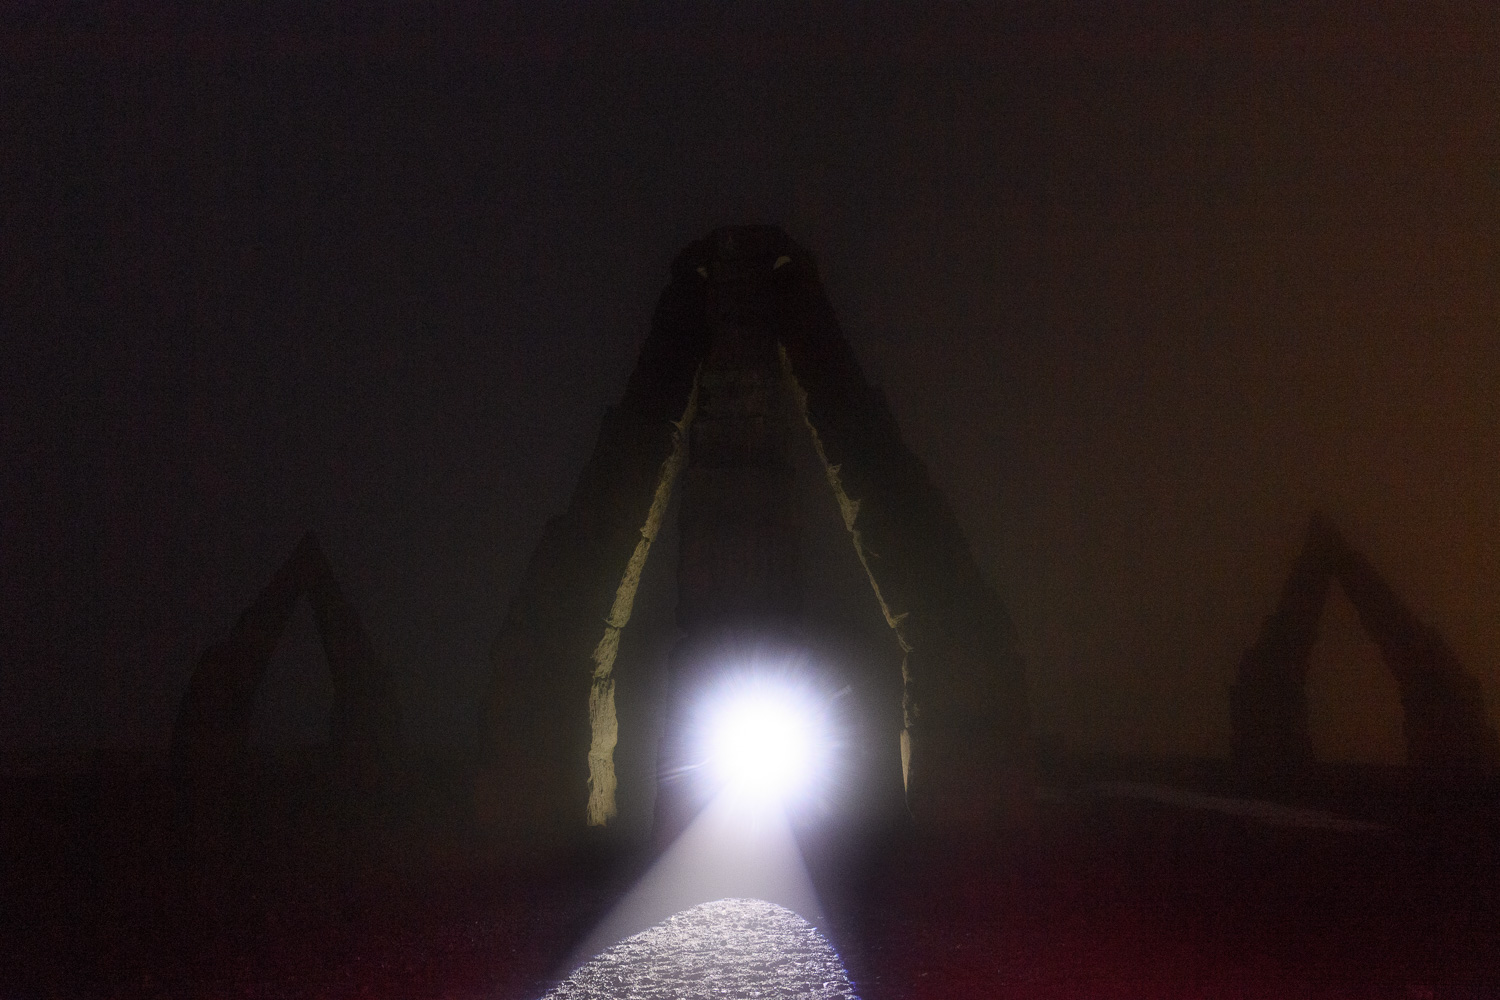 At Arctic Henge in Iceland, the fog made it tricky to illuminate our subject from a distance, so I put a  Coast HP5R  flashlight on the rock and autofocused on the lit bulb. Nikon D5 with a Nikon 14-24mm f/2.8 lens. 30 seconds, f/4.5, ISO 3200.